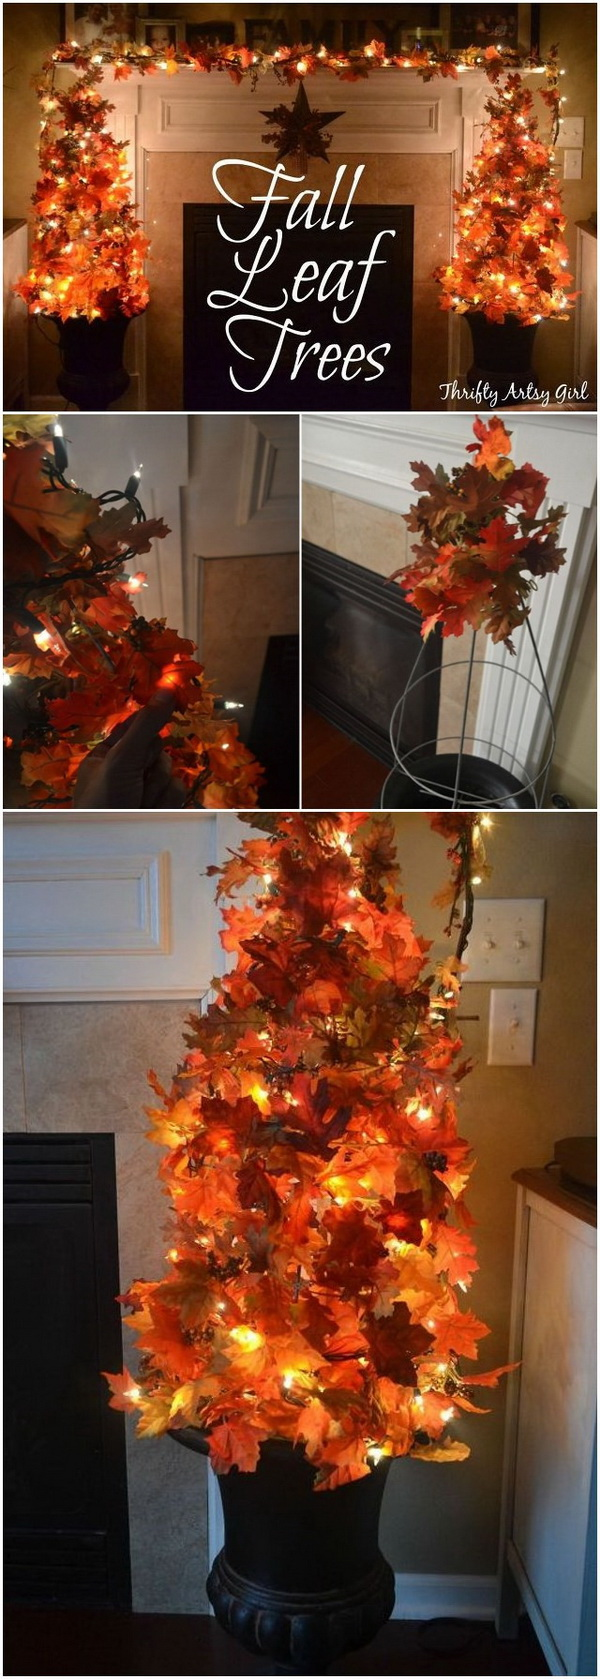 Easy DIY Fall Leaves Potted Topiary Tree. Create an easy fall leaves potted topiary tree with two urn planters and some fake leaves and fairy lights! Perfect in front of the fireplace for a fall decoration project.